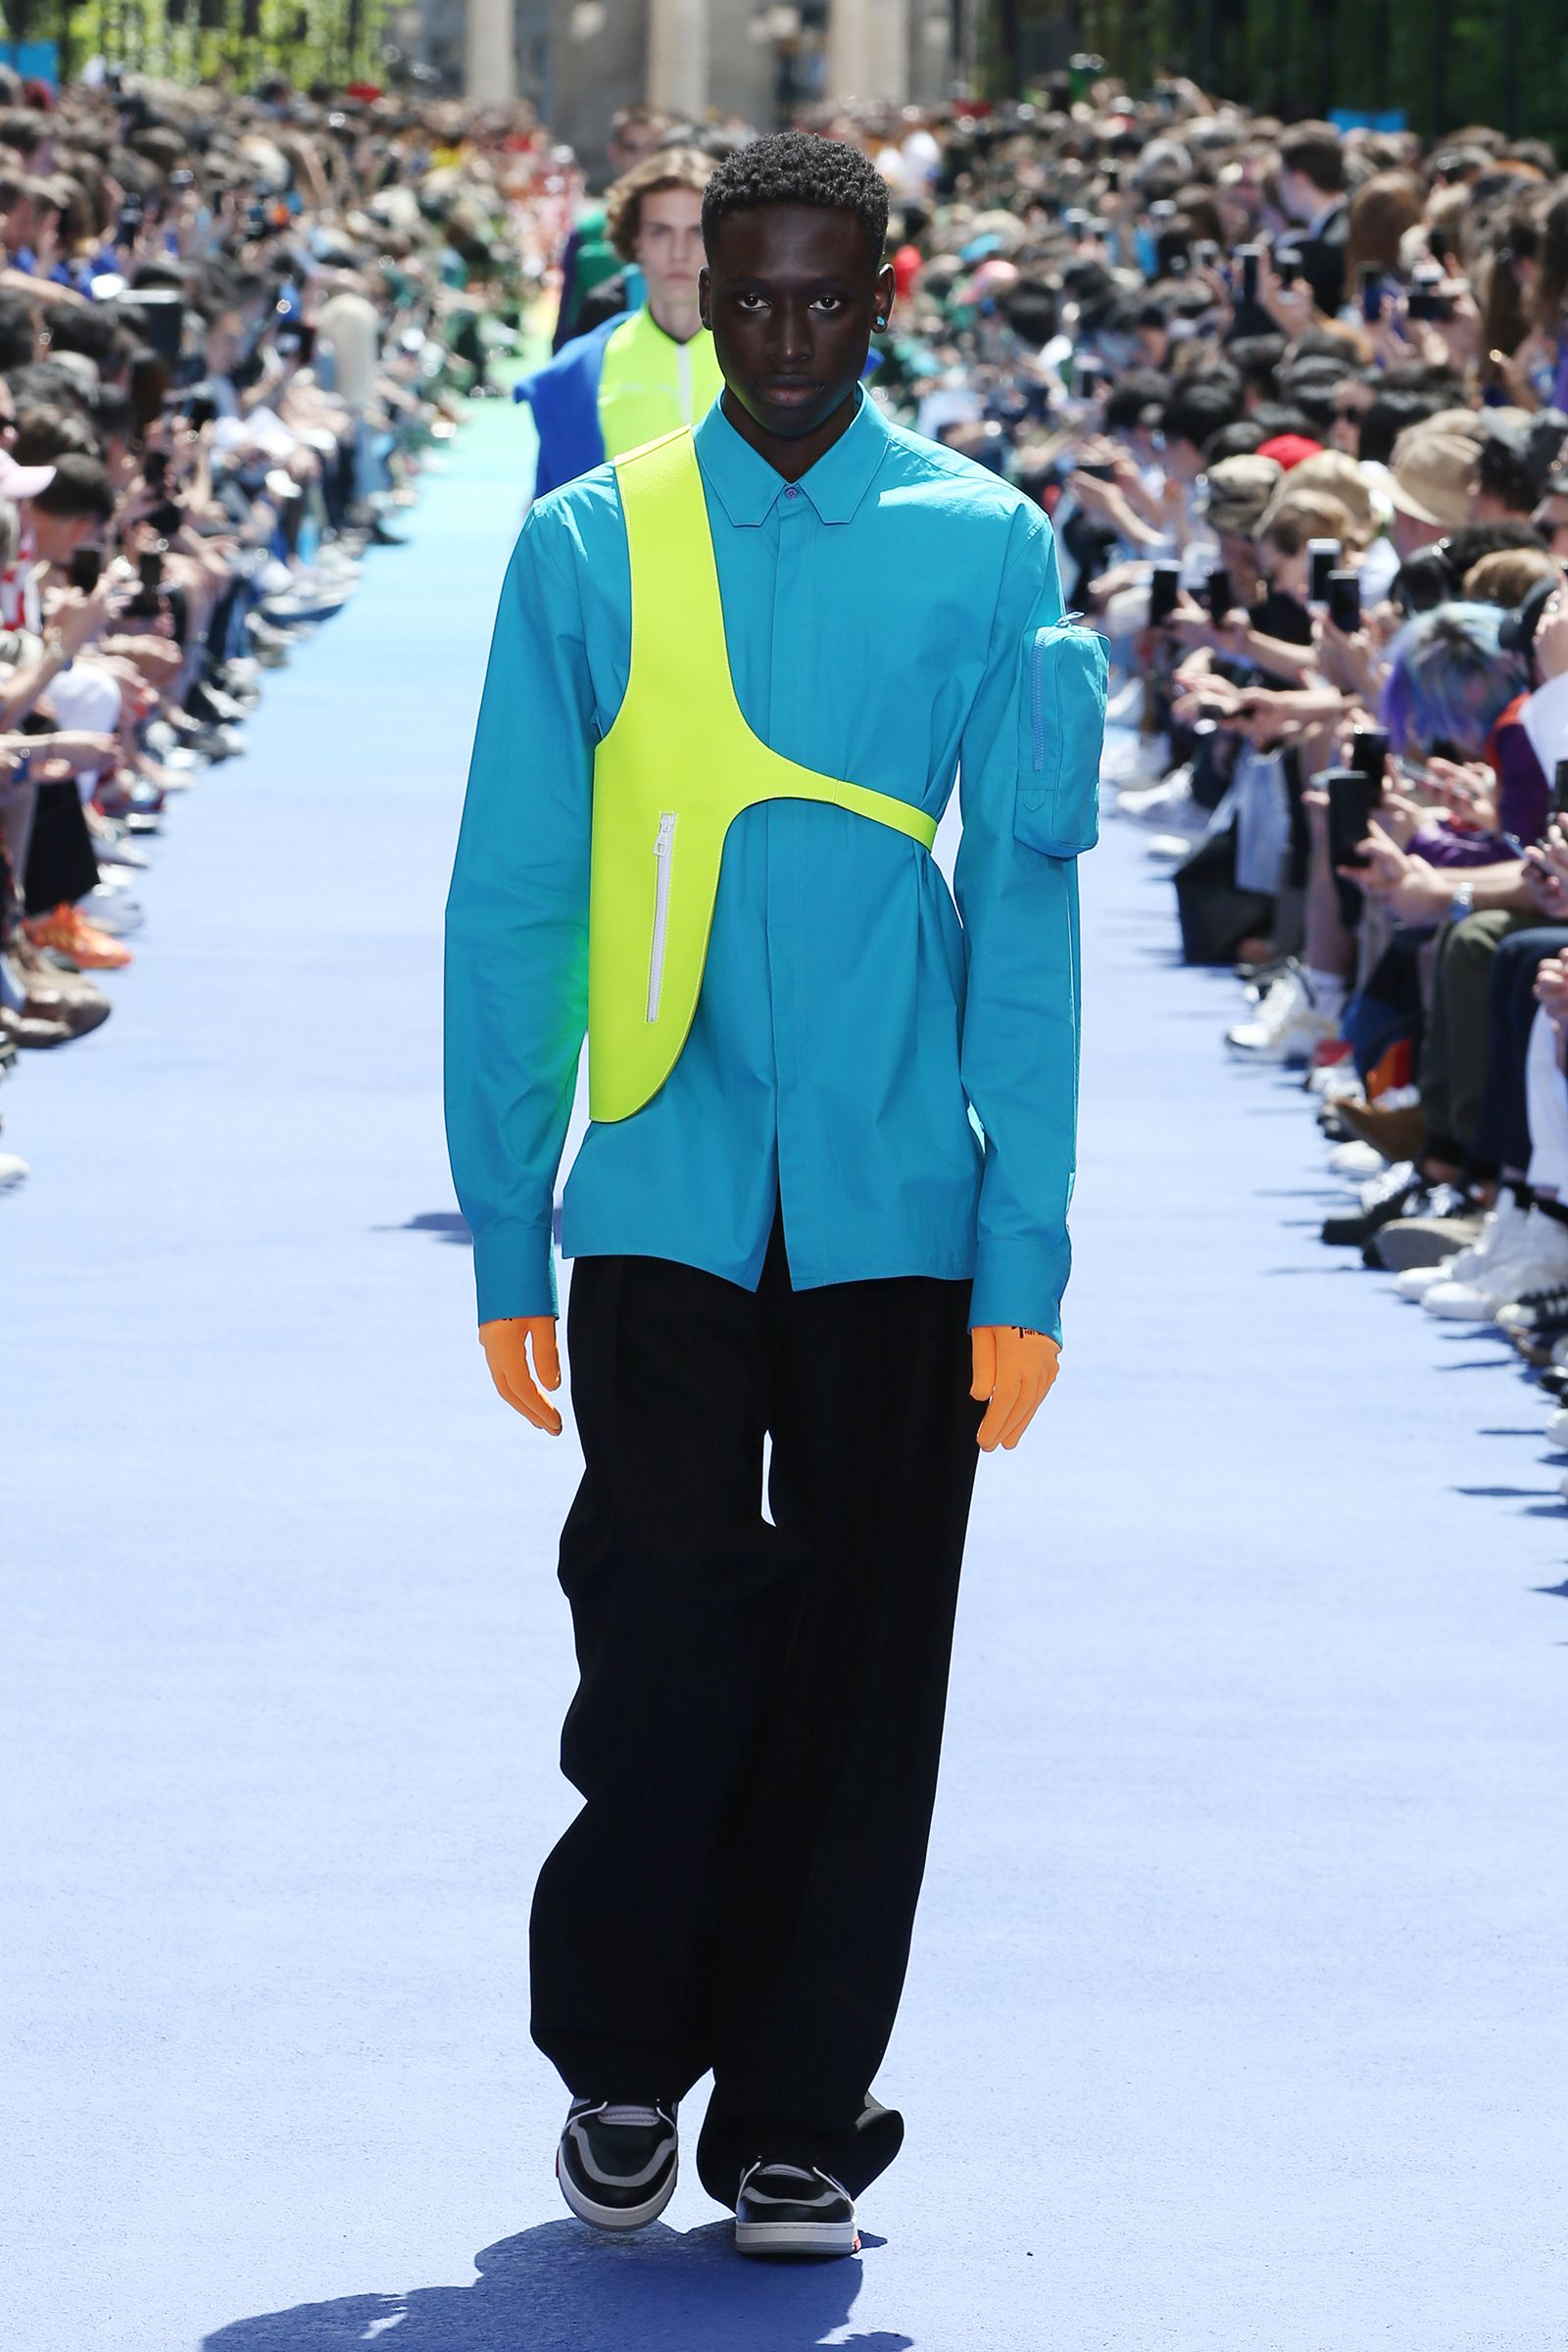 58c3ca393816 Look from the Men s Spring-Summer 2019 Fashion Show by Louis Vuitton s new  men s artistic director Virgil Abloh.